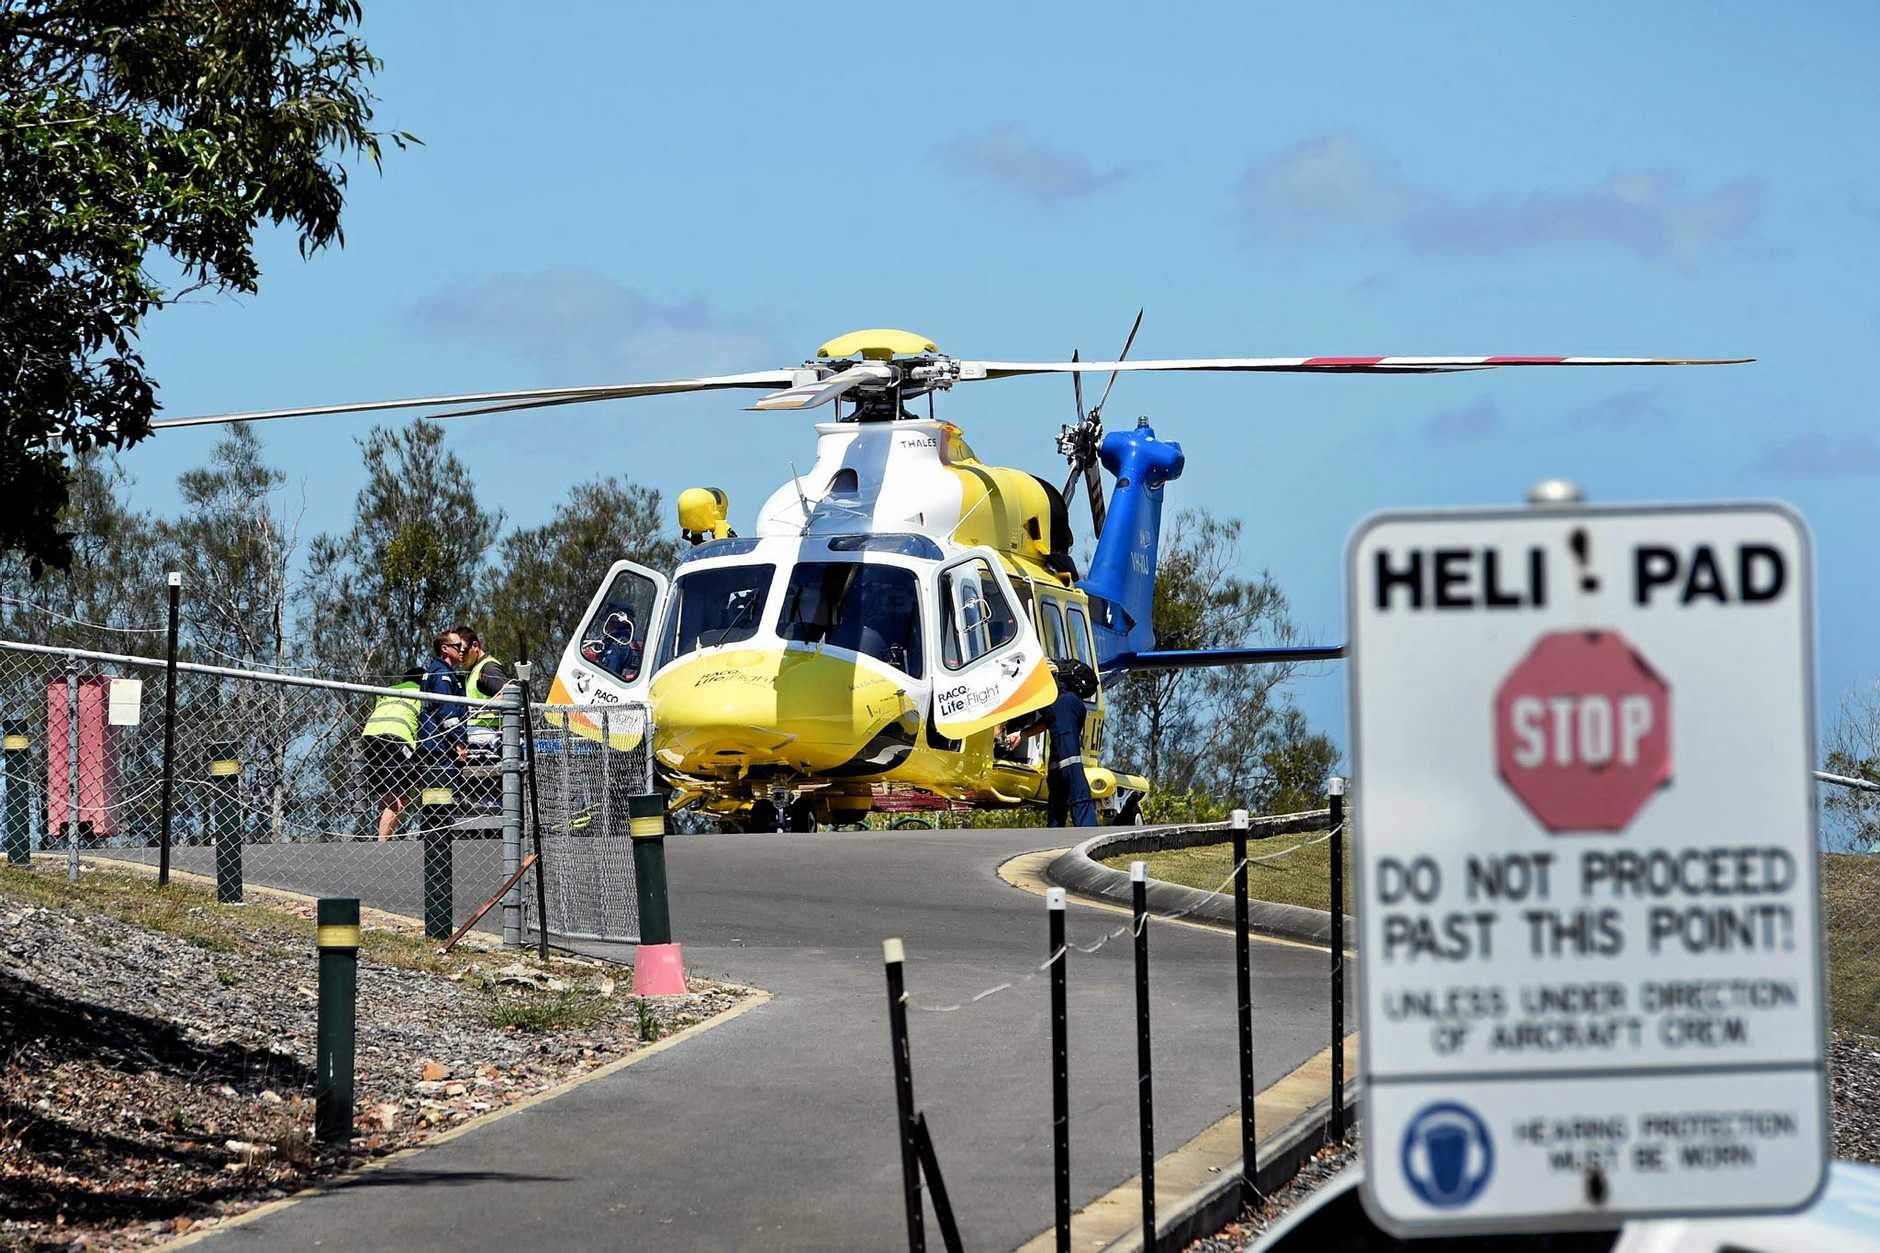 A 59-year-old man was transported to Hervey Bay Hospital by the RACQ Life Flight helicopter on Saturday afternoon.